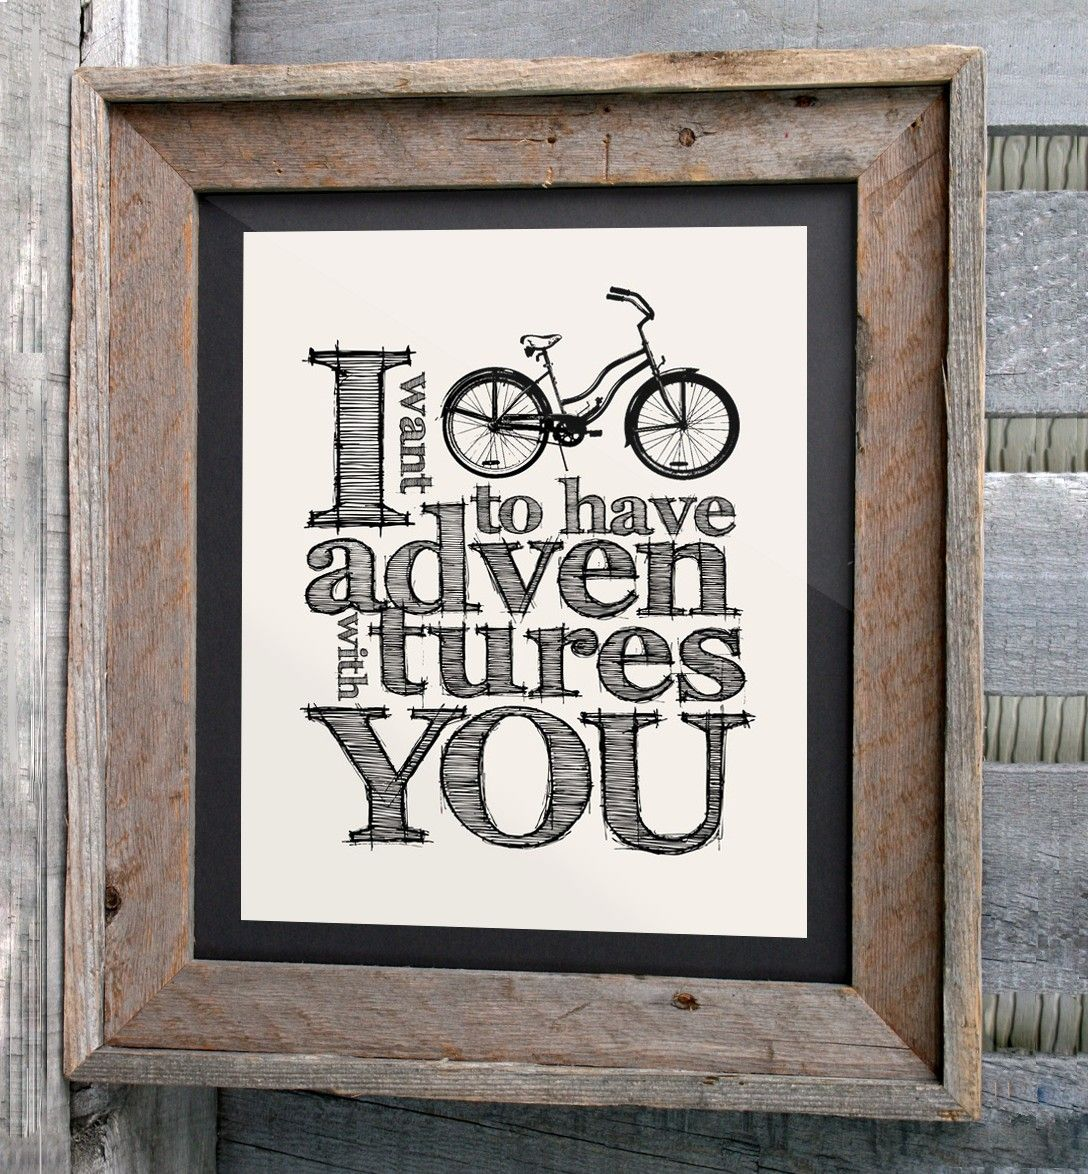 """Bicycle Art Print - 8x10 """"I want to have adventures with you"""" - Typographic print. $16.00, via Etsy."""